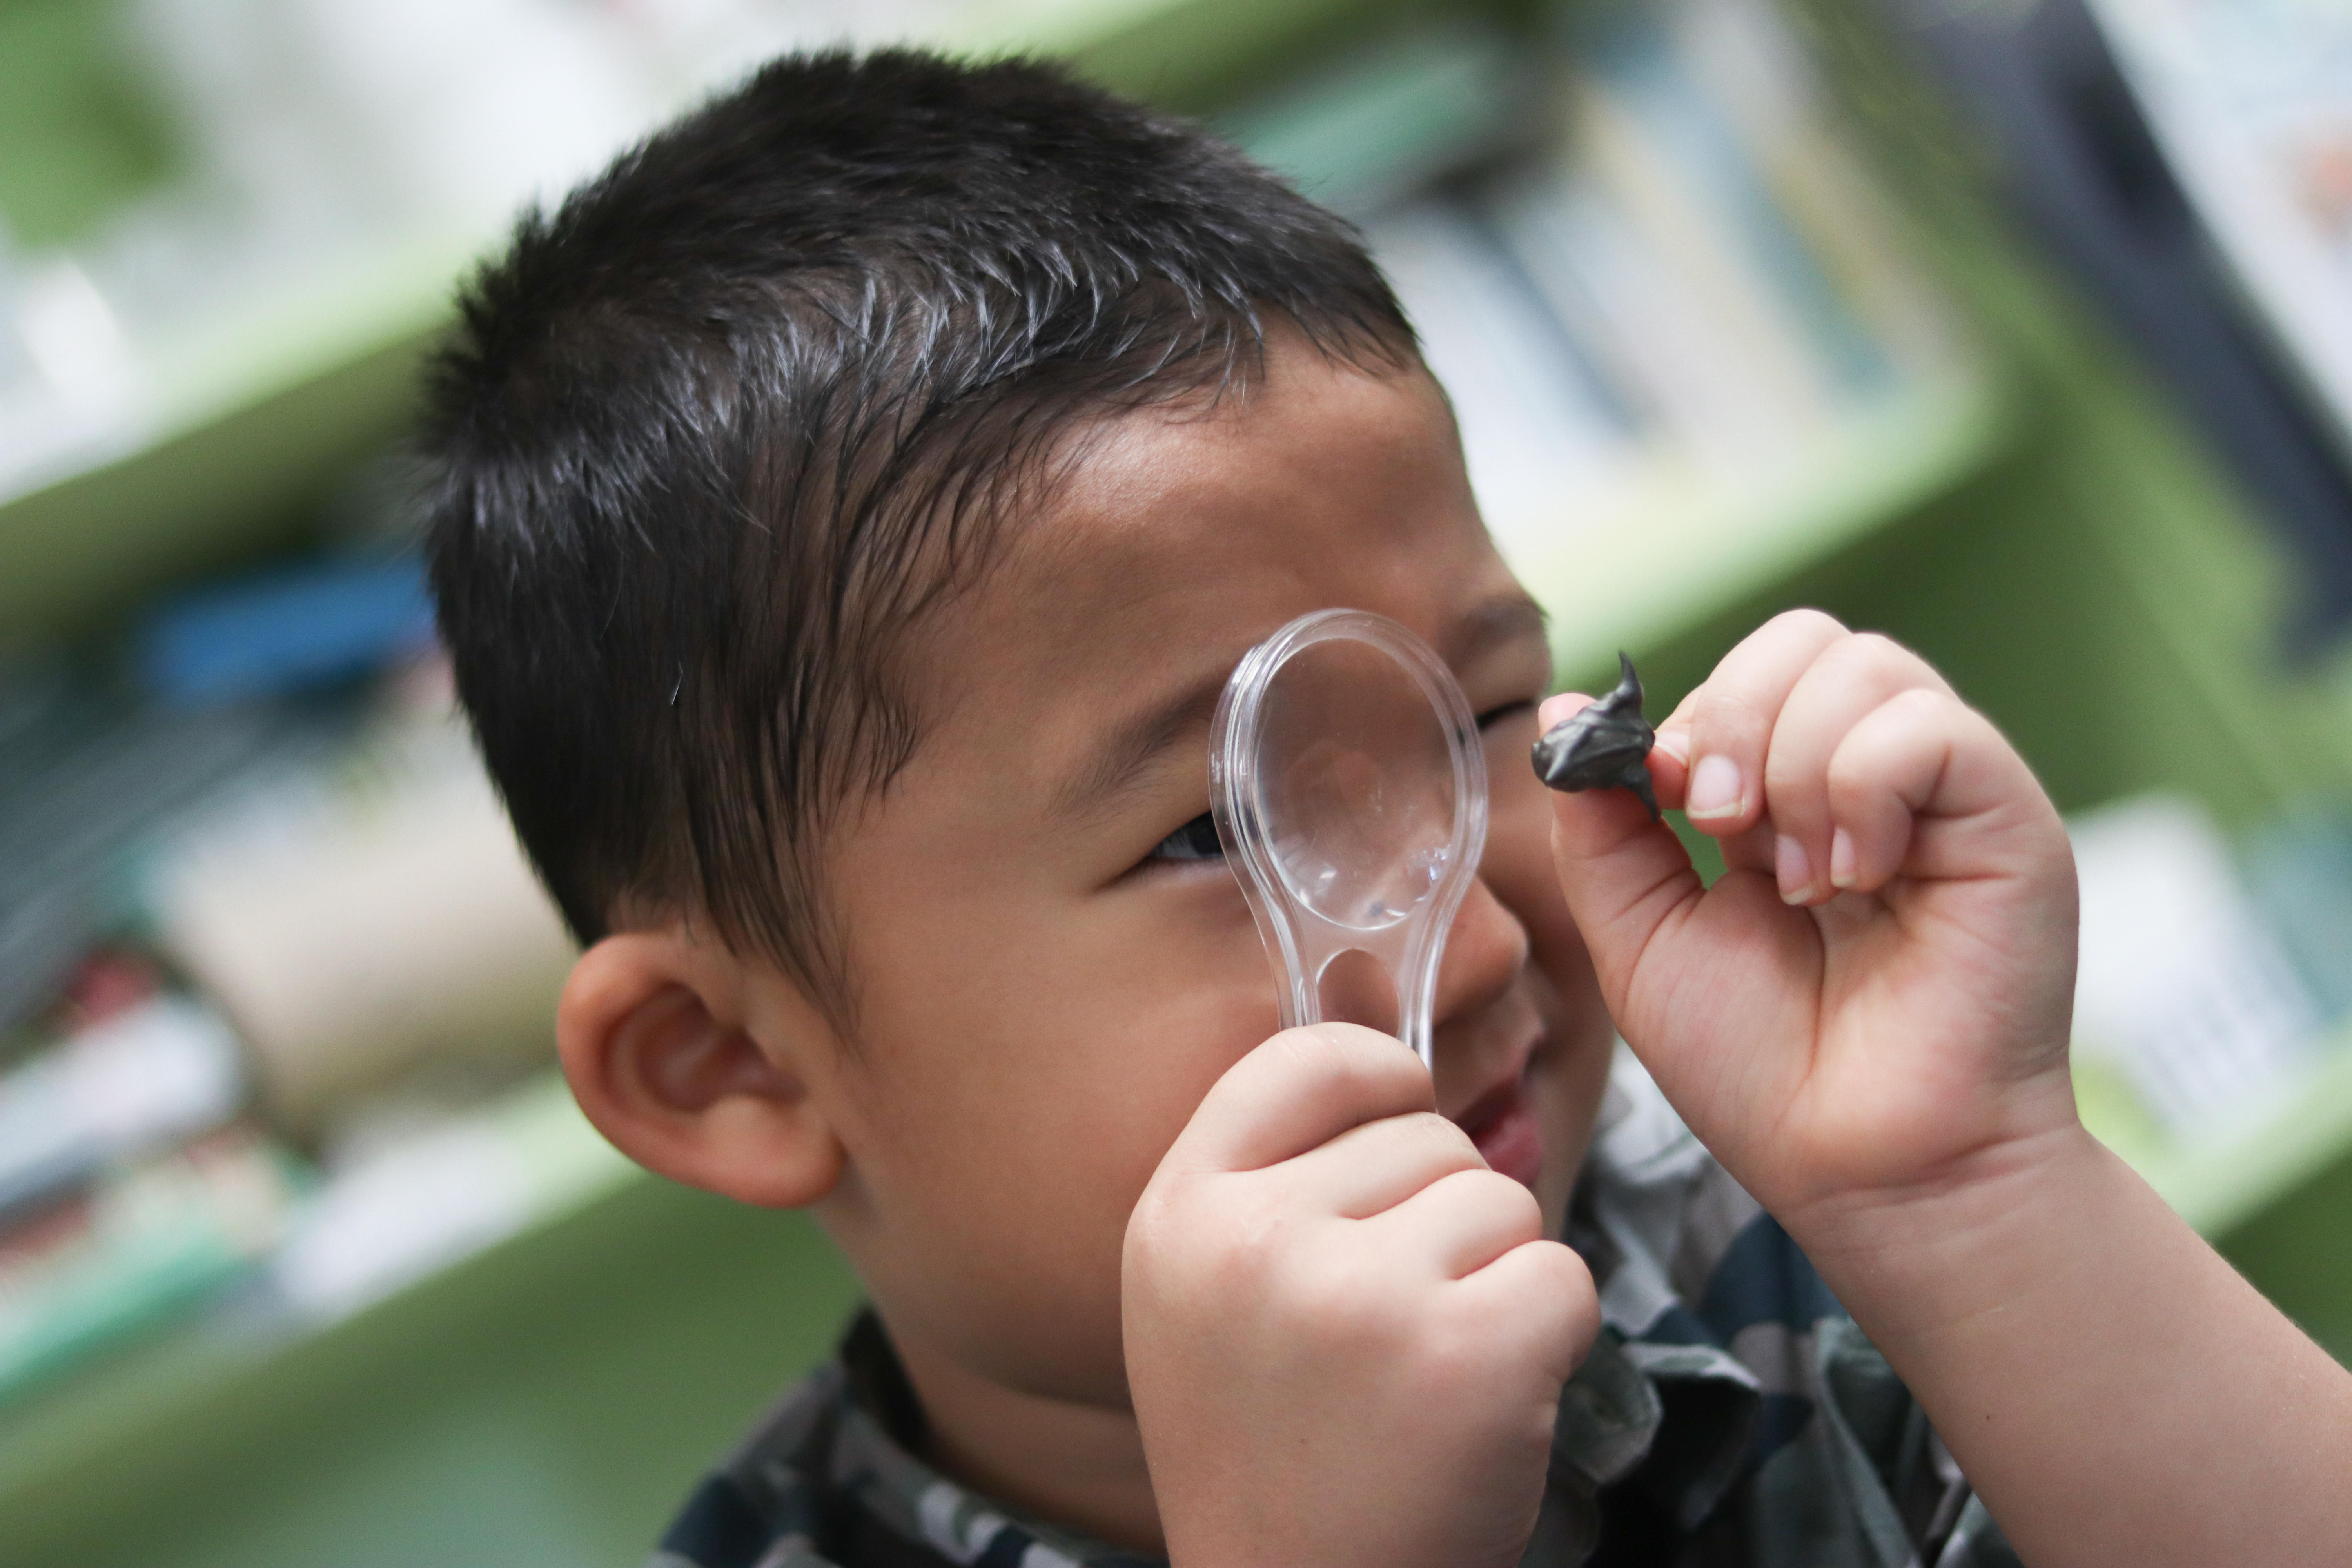 Male student inspecting a seed through a magnifying glass.